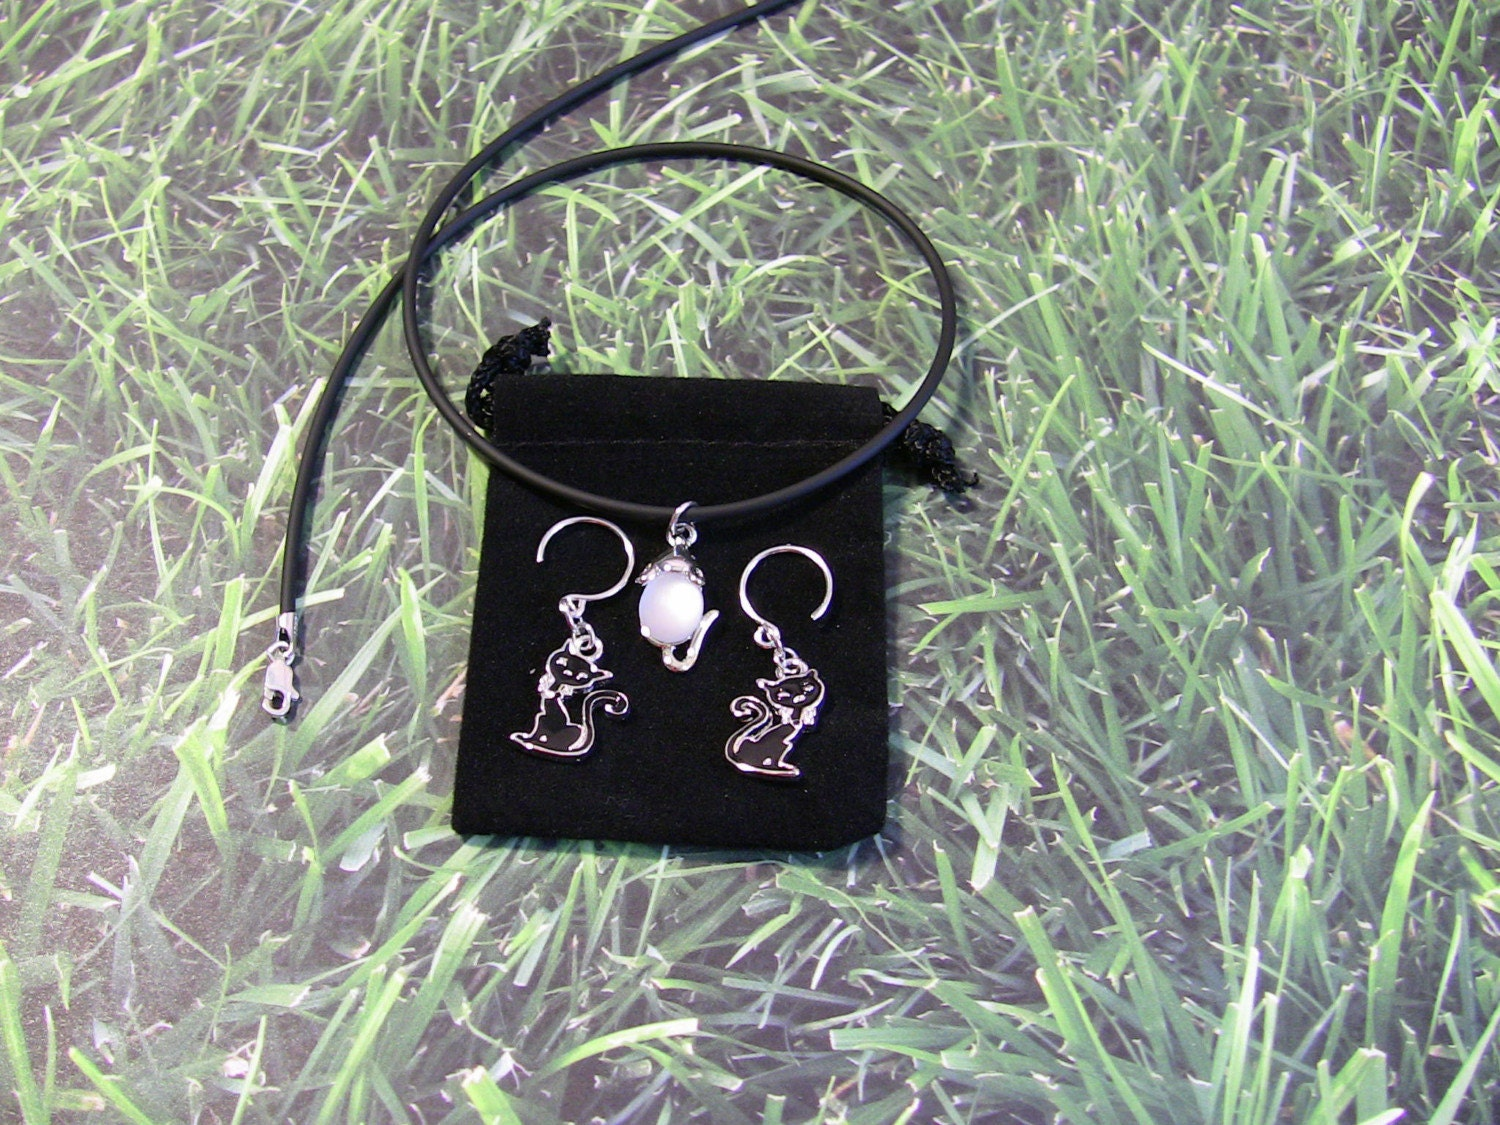 Black Cat and Mouse Necklace and Earrings Gift Set by orangecatblues on Etsy